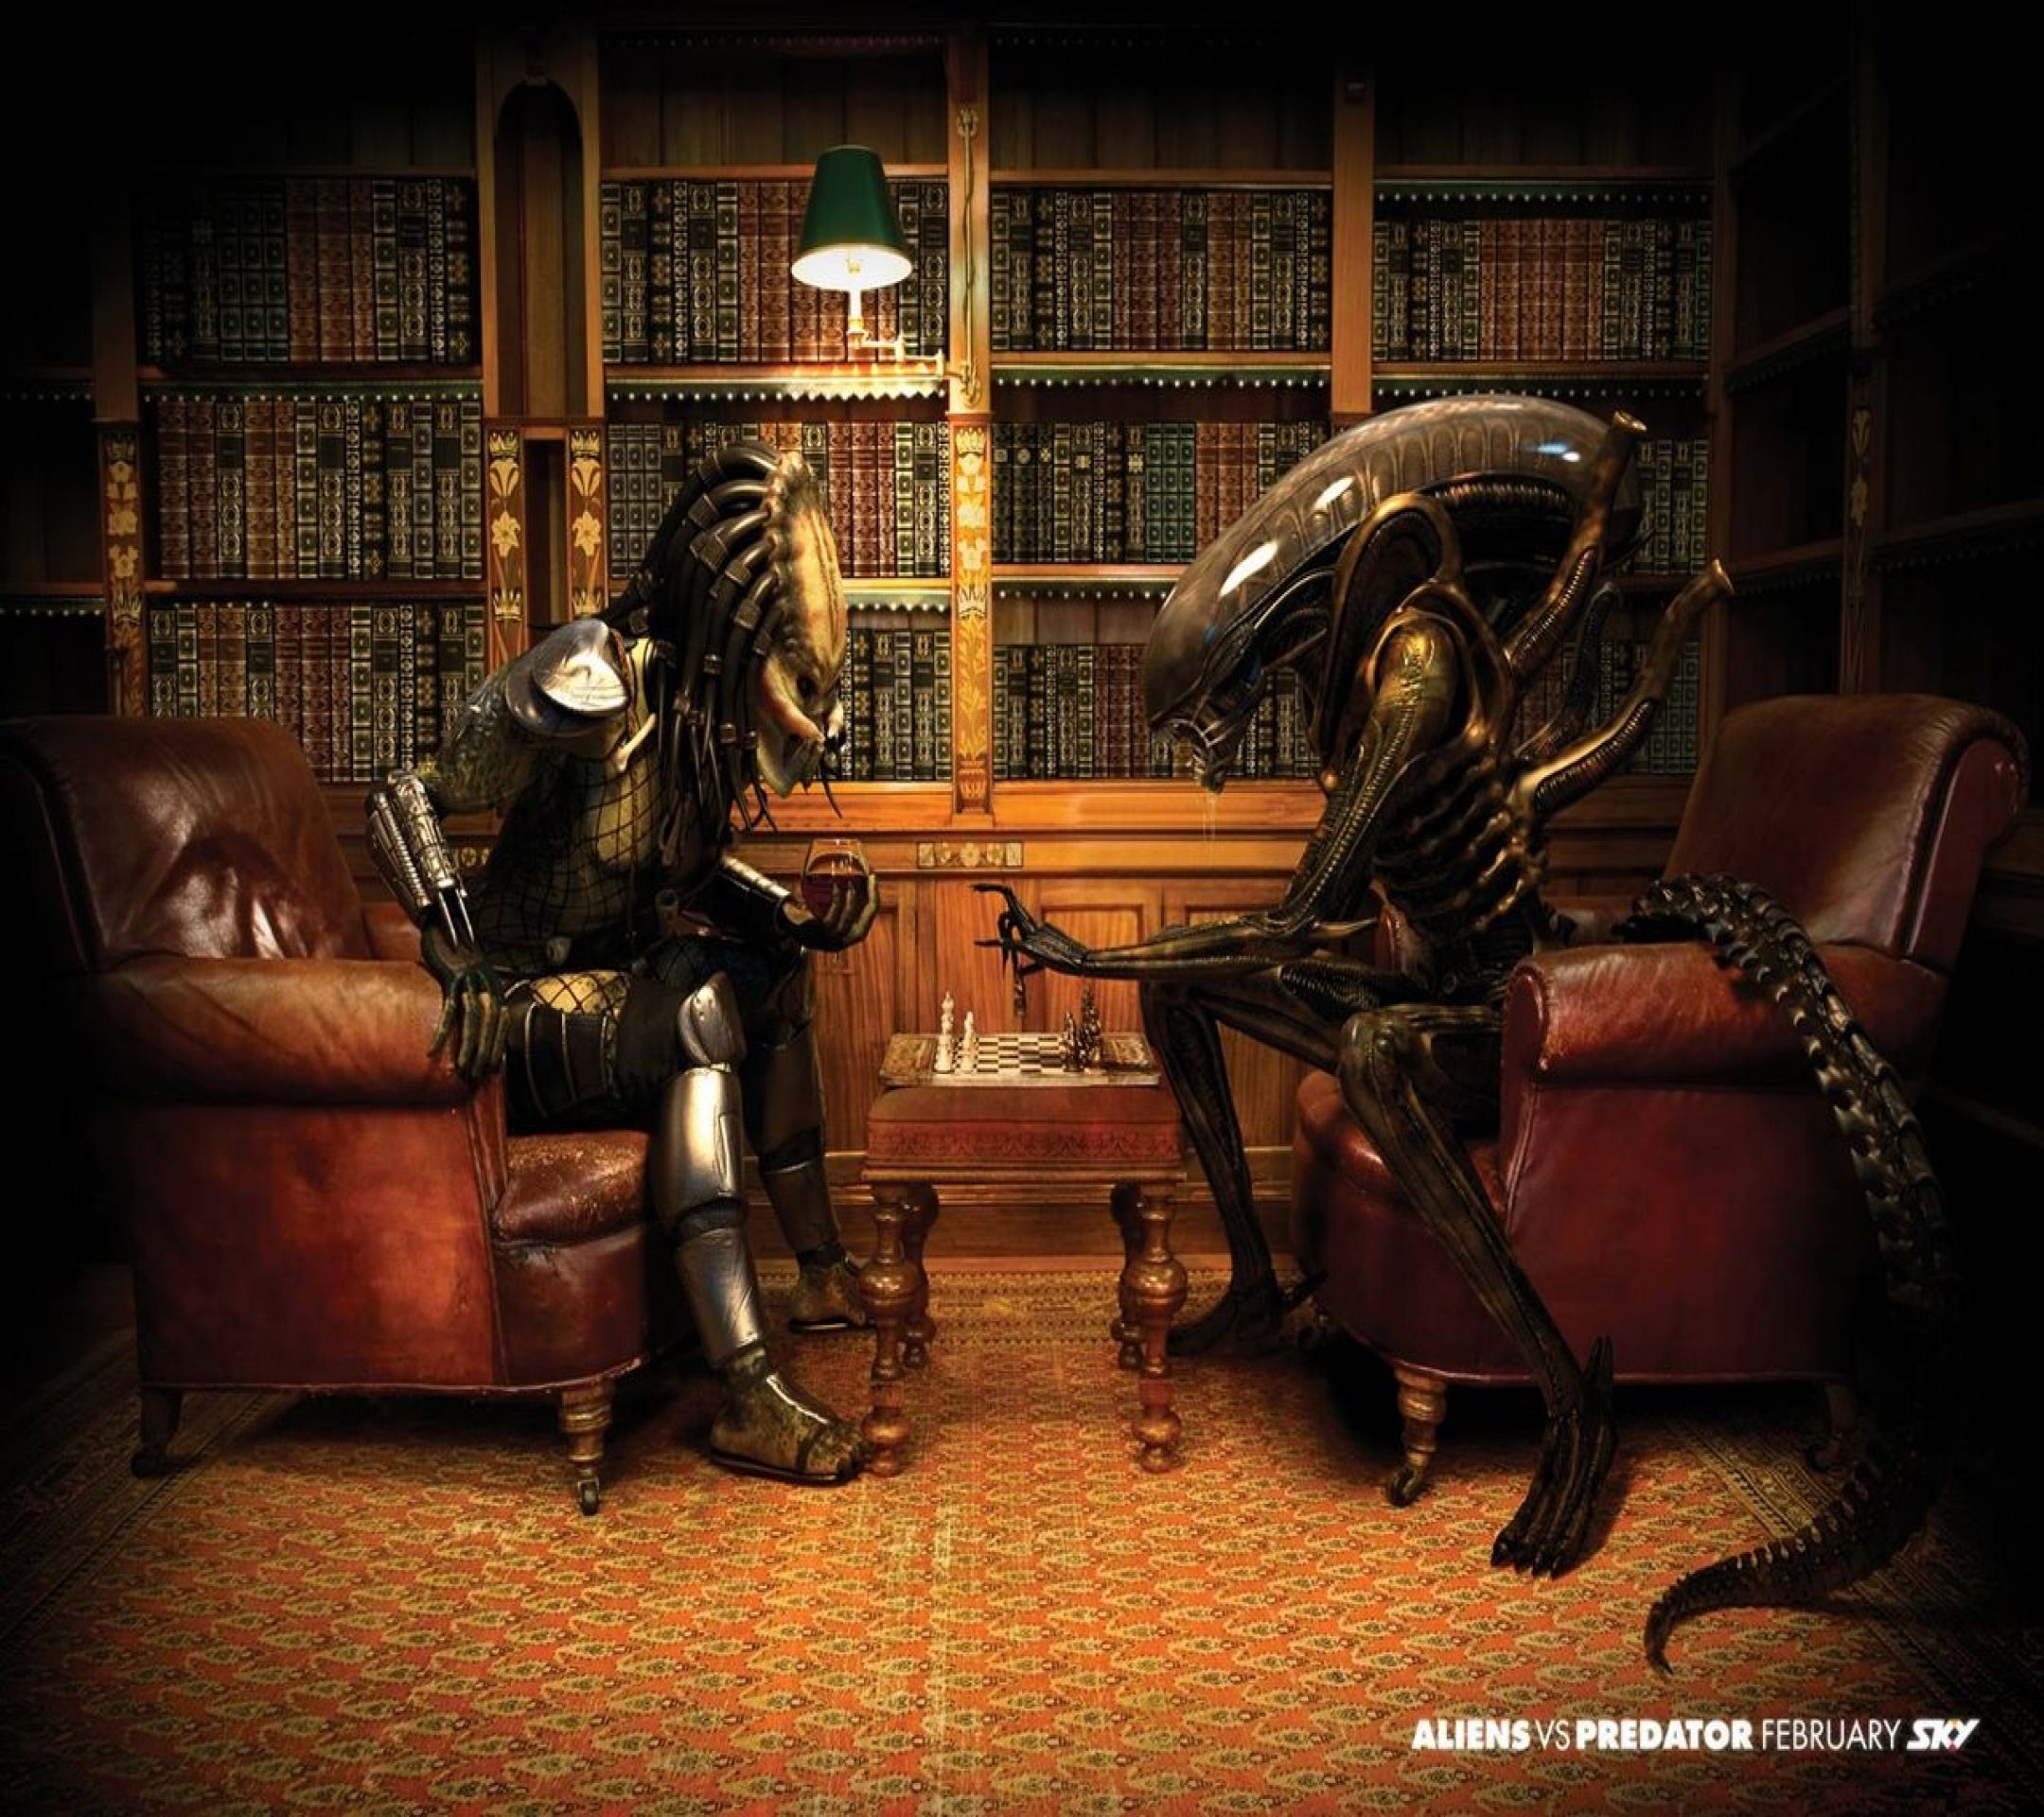 Avp tap to see more funny wallpapers mobile9 alien